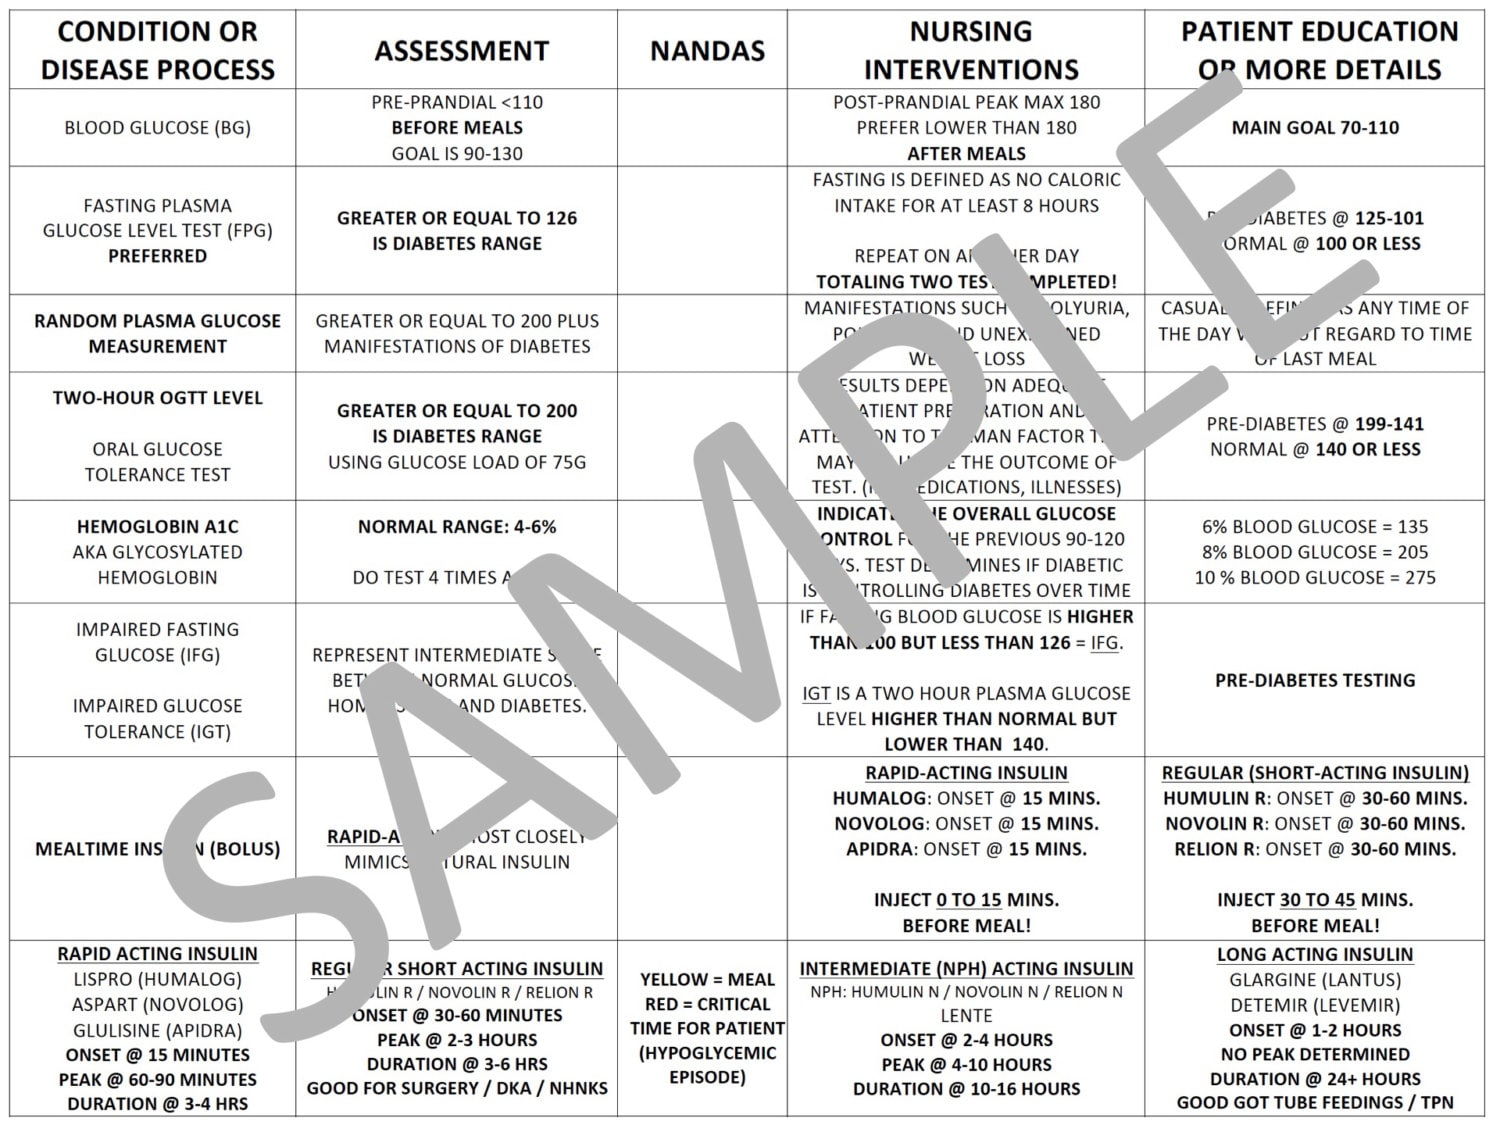 Insulin Chart For Nursing School PDF File by NurseNacole